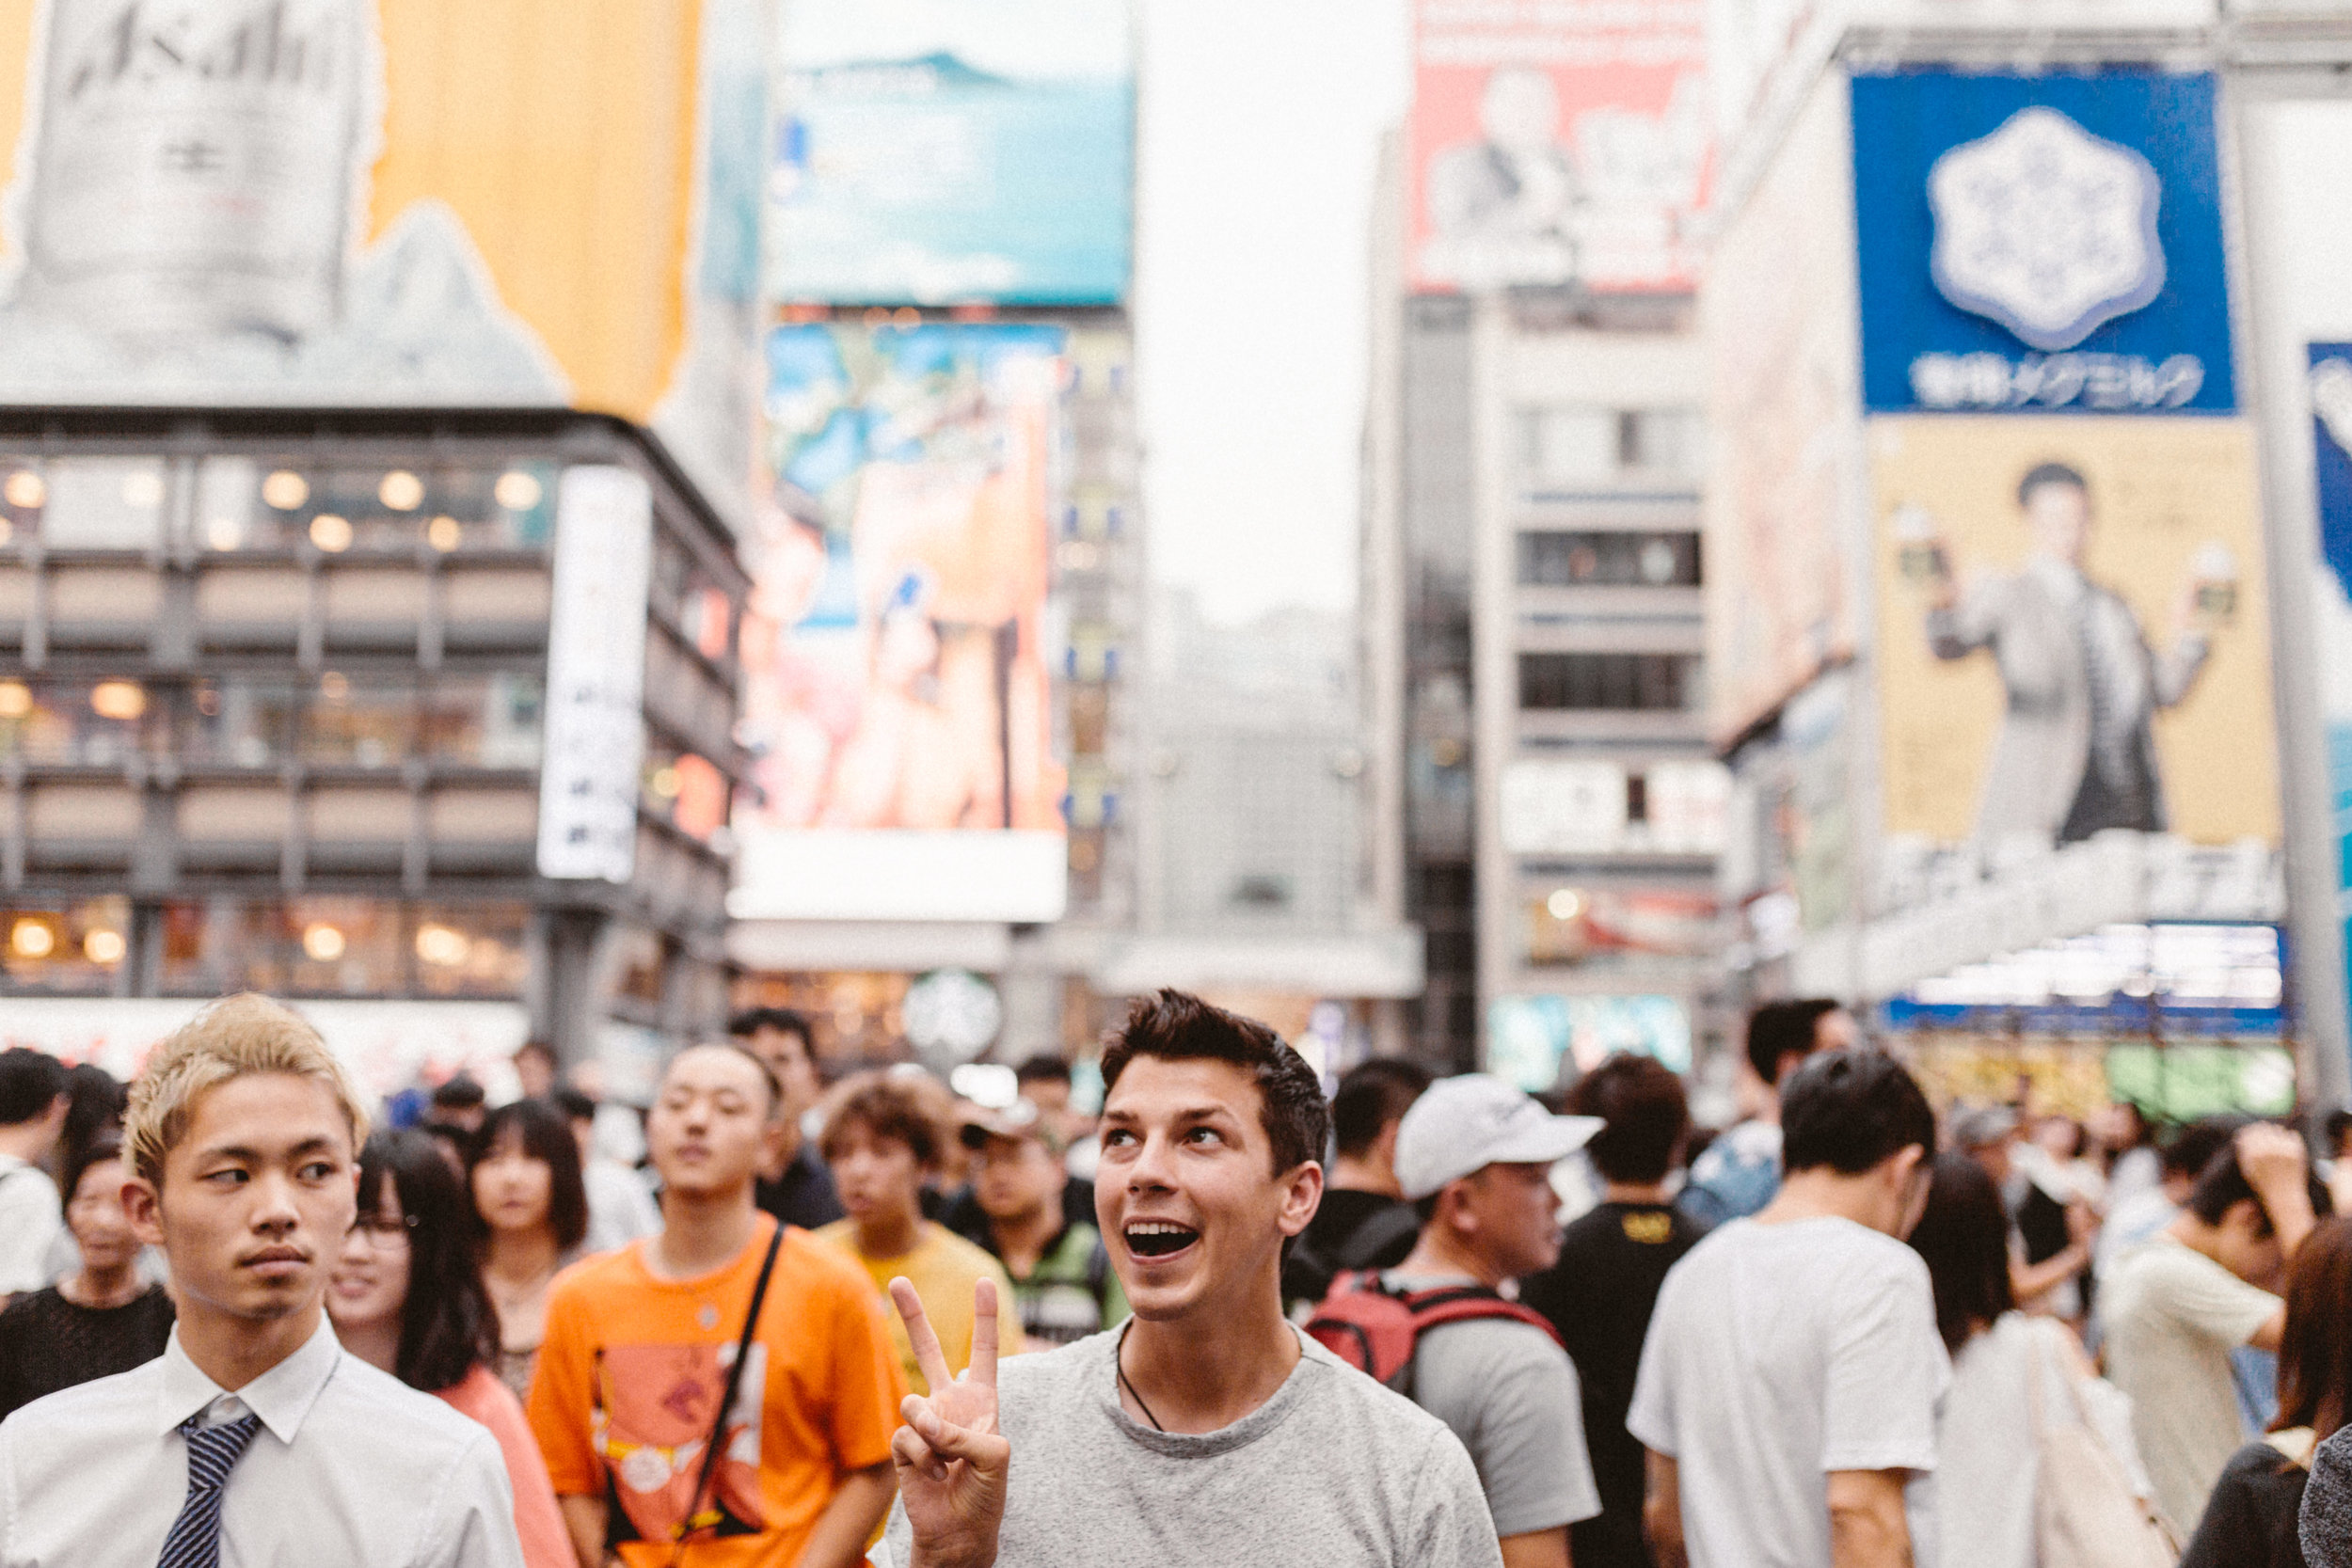 Matthew standing in the middle of Osaka